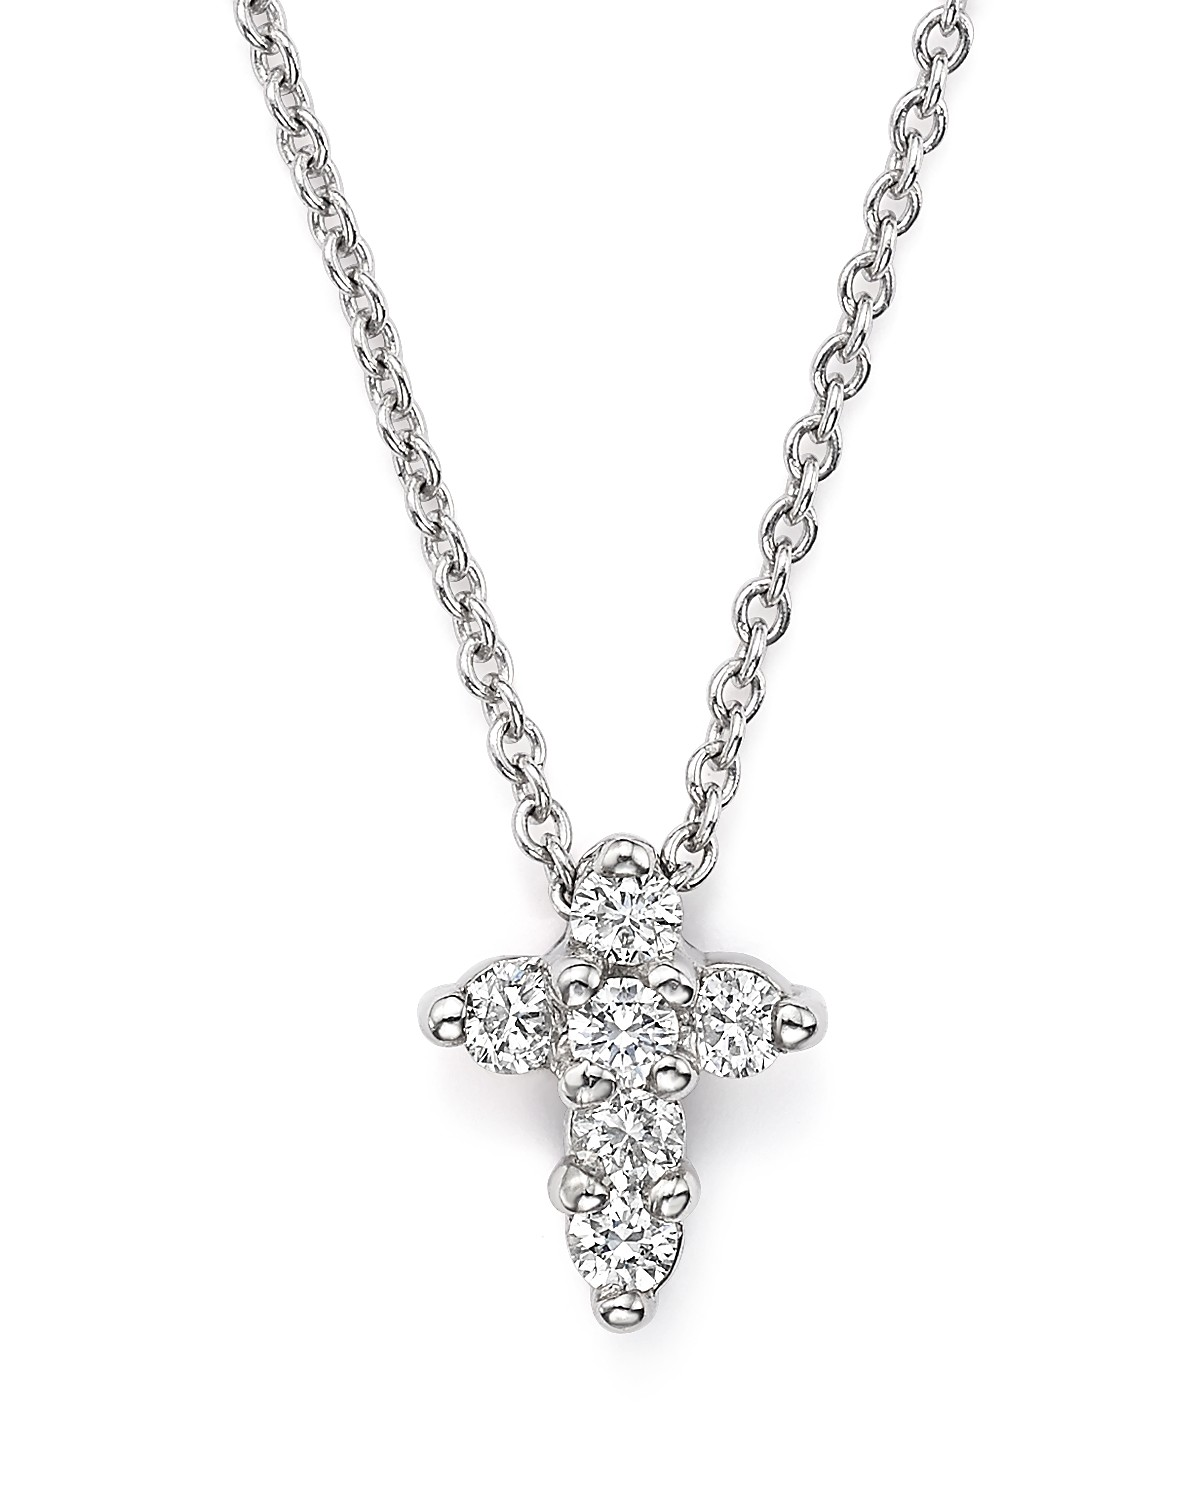 Roberto coin 18k white gold small cross pendant necklace with pdpimgshortdescription pdpimgshortdescription pdpimgshortdescription audiocablefo